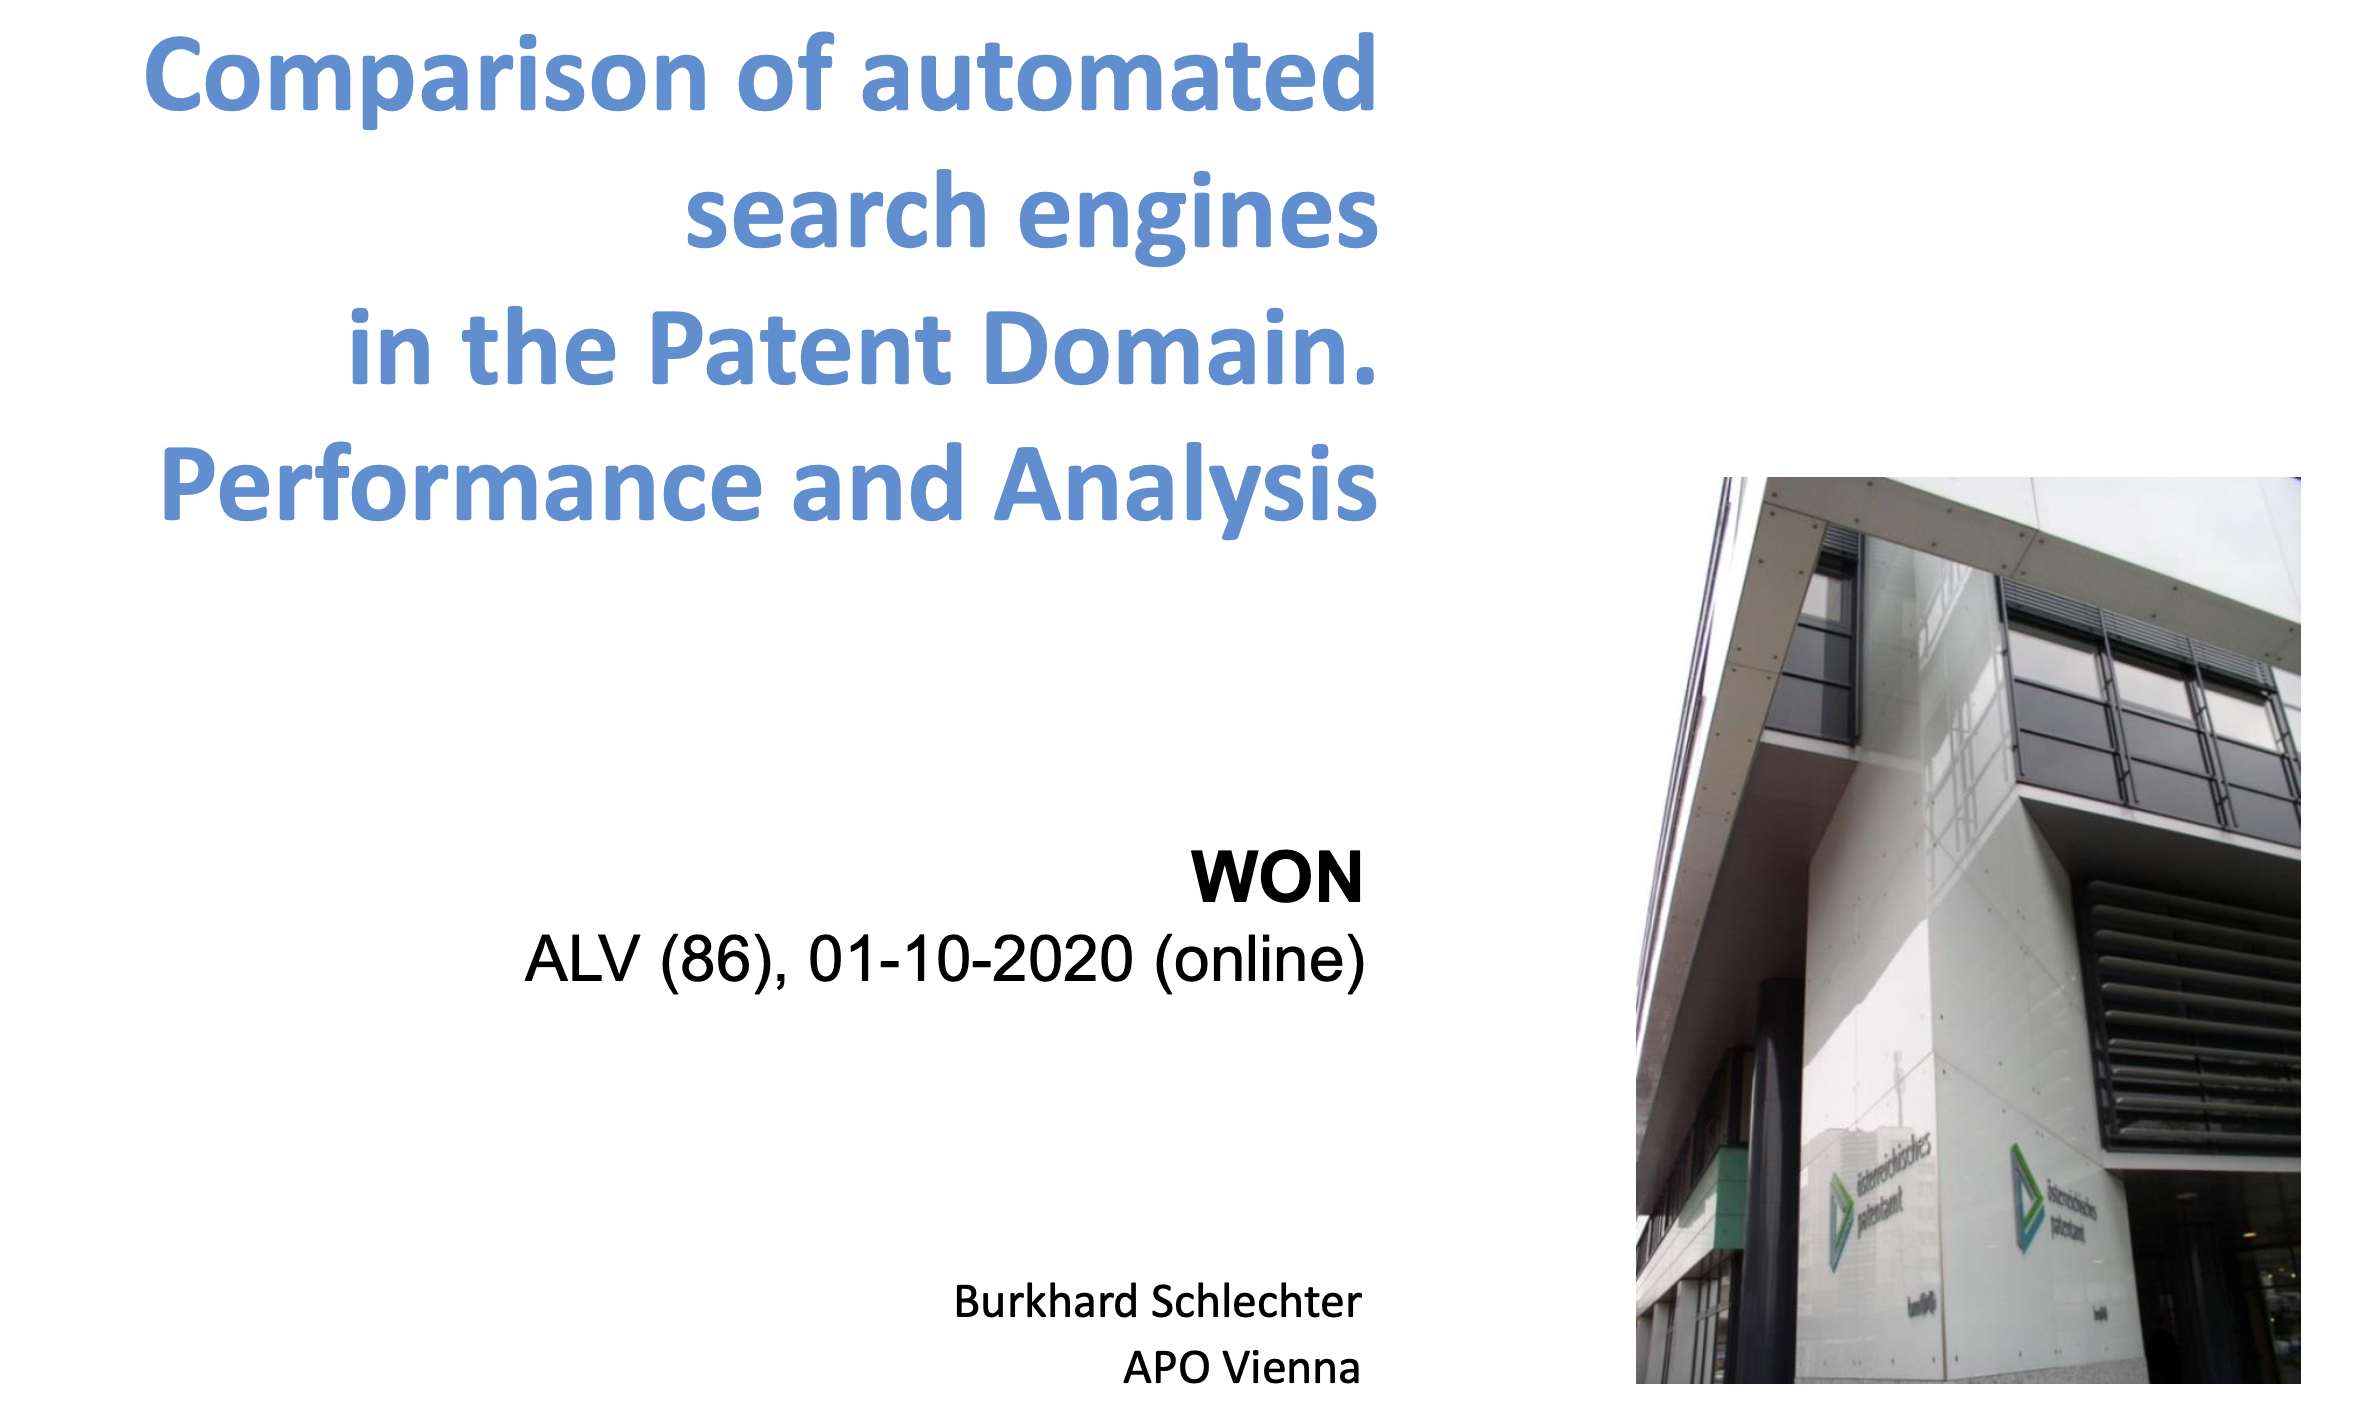 Comparison of Automated Search Engines in the Patent Domain: Performance and Analysis